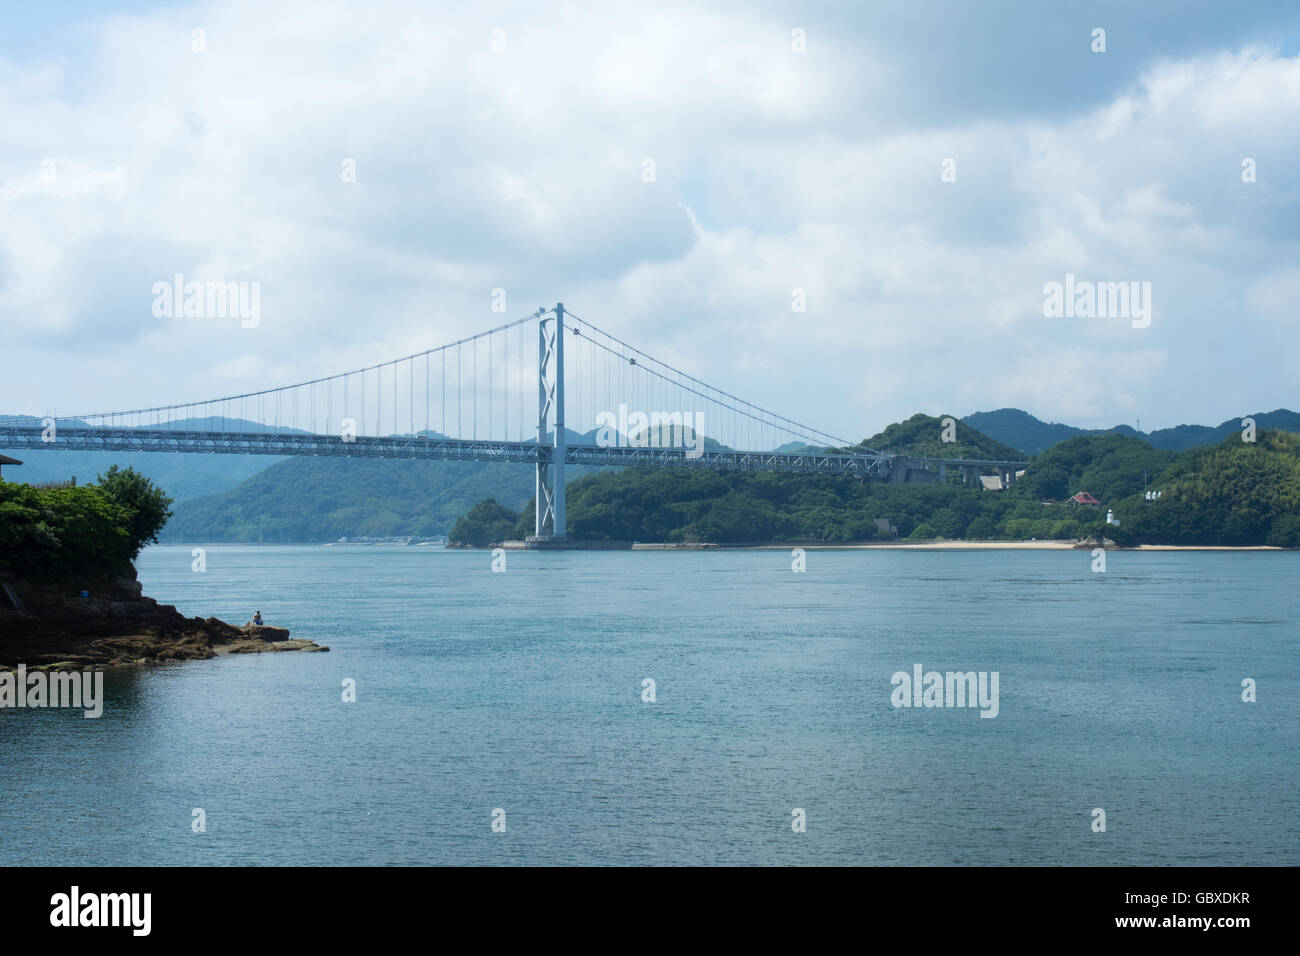 Innoshima Bridge connecting the islands of Innoshima and Mukaishima in the Seto Inland Sea between Honshu and Shikoku. Stock Photo